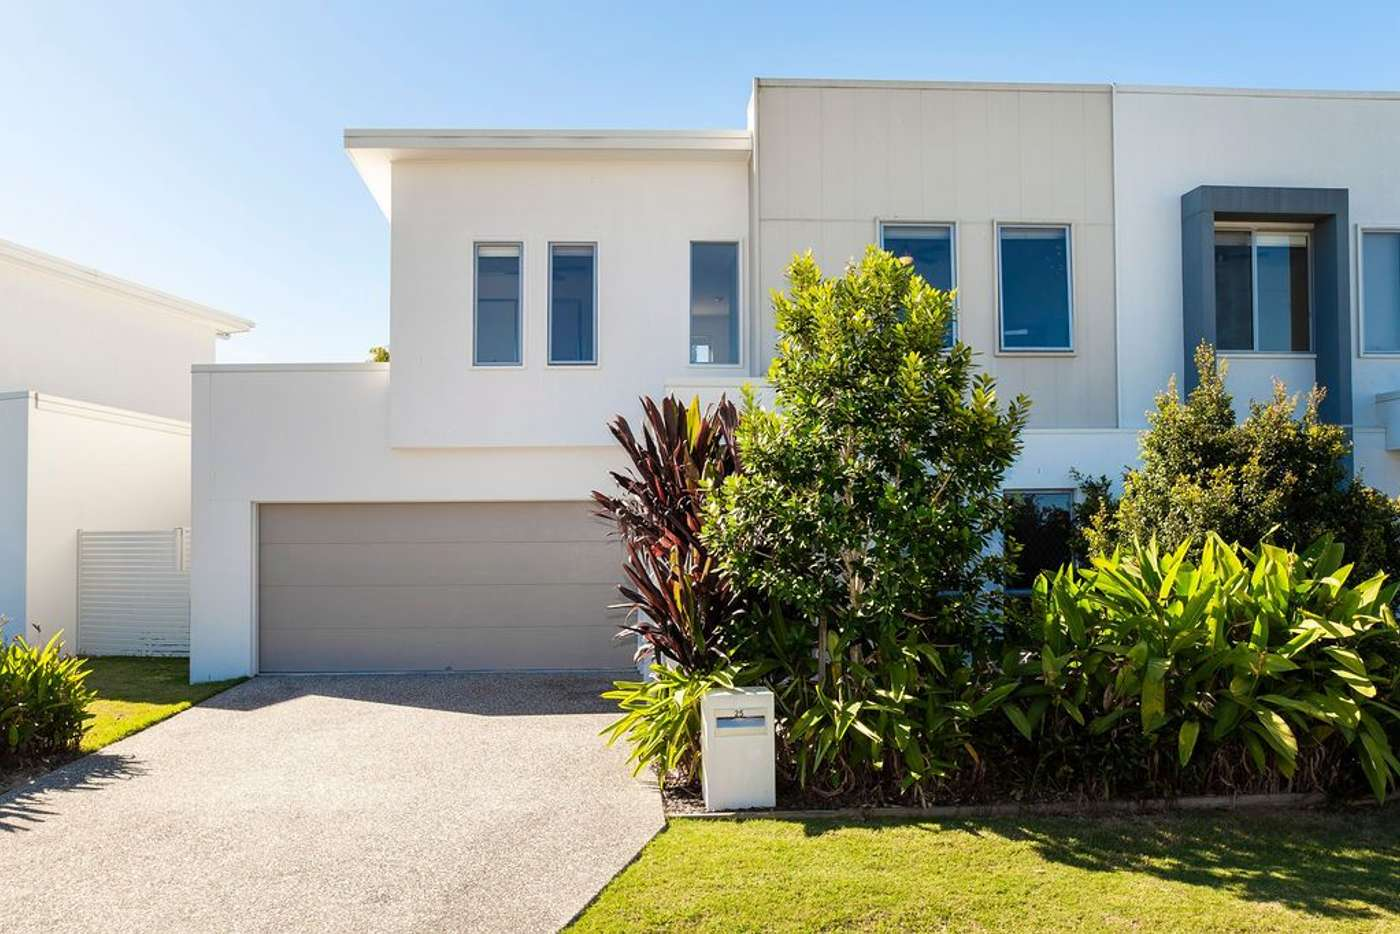 Main view of Homely house listing, 25 Azure Way, Hope Island QLD 4212